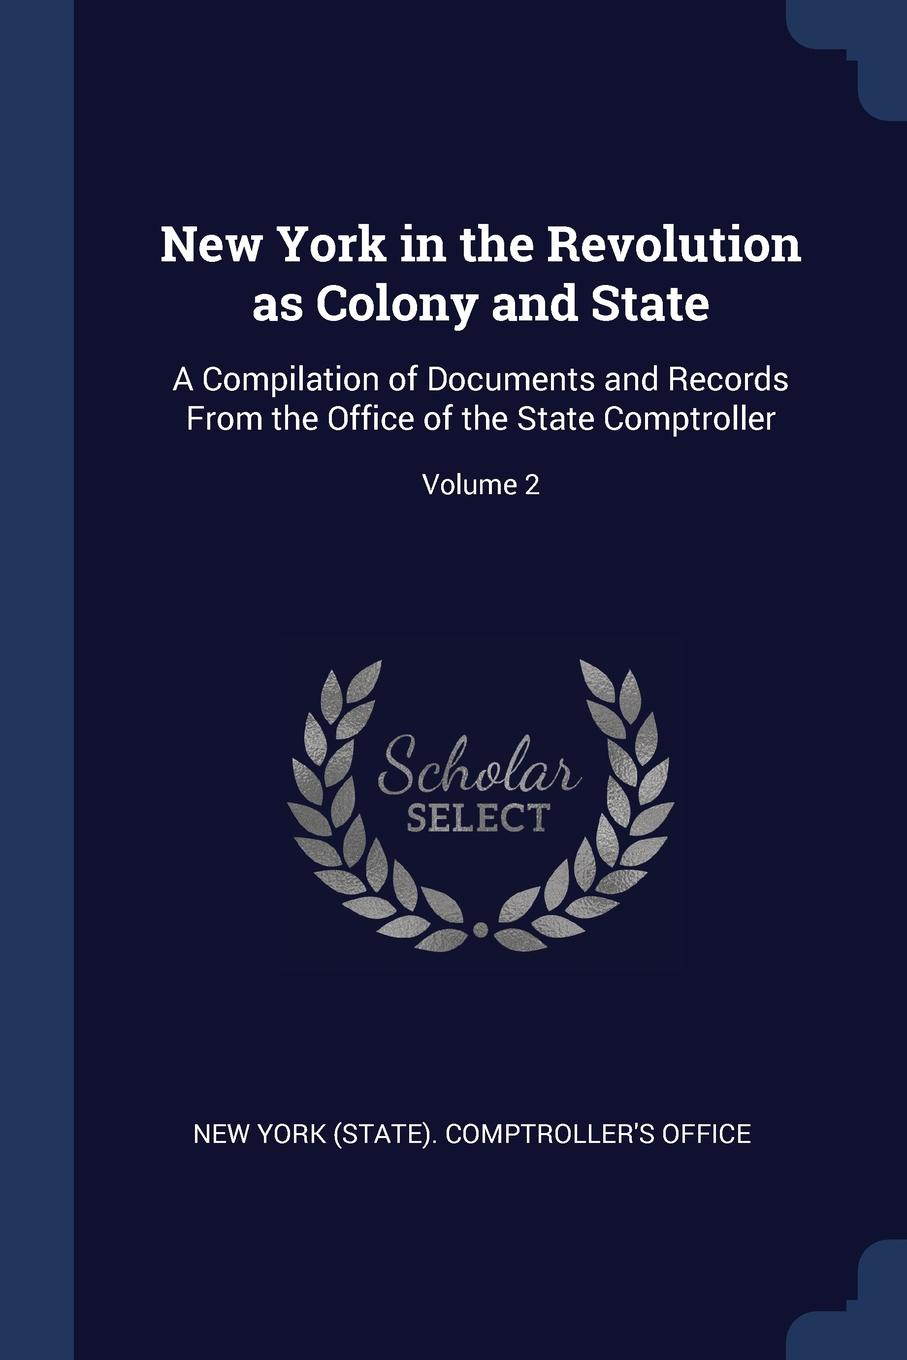 New York in the Revolution as Colony and State. A Compilation of Documents and Records From the Office of the State Comptroller; Volume 2.